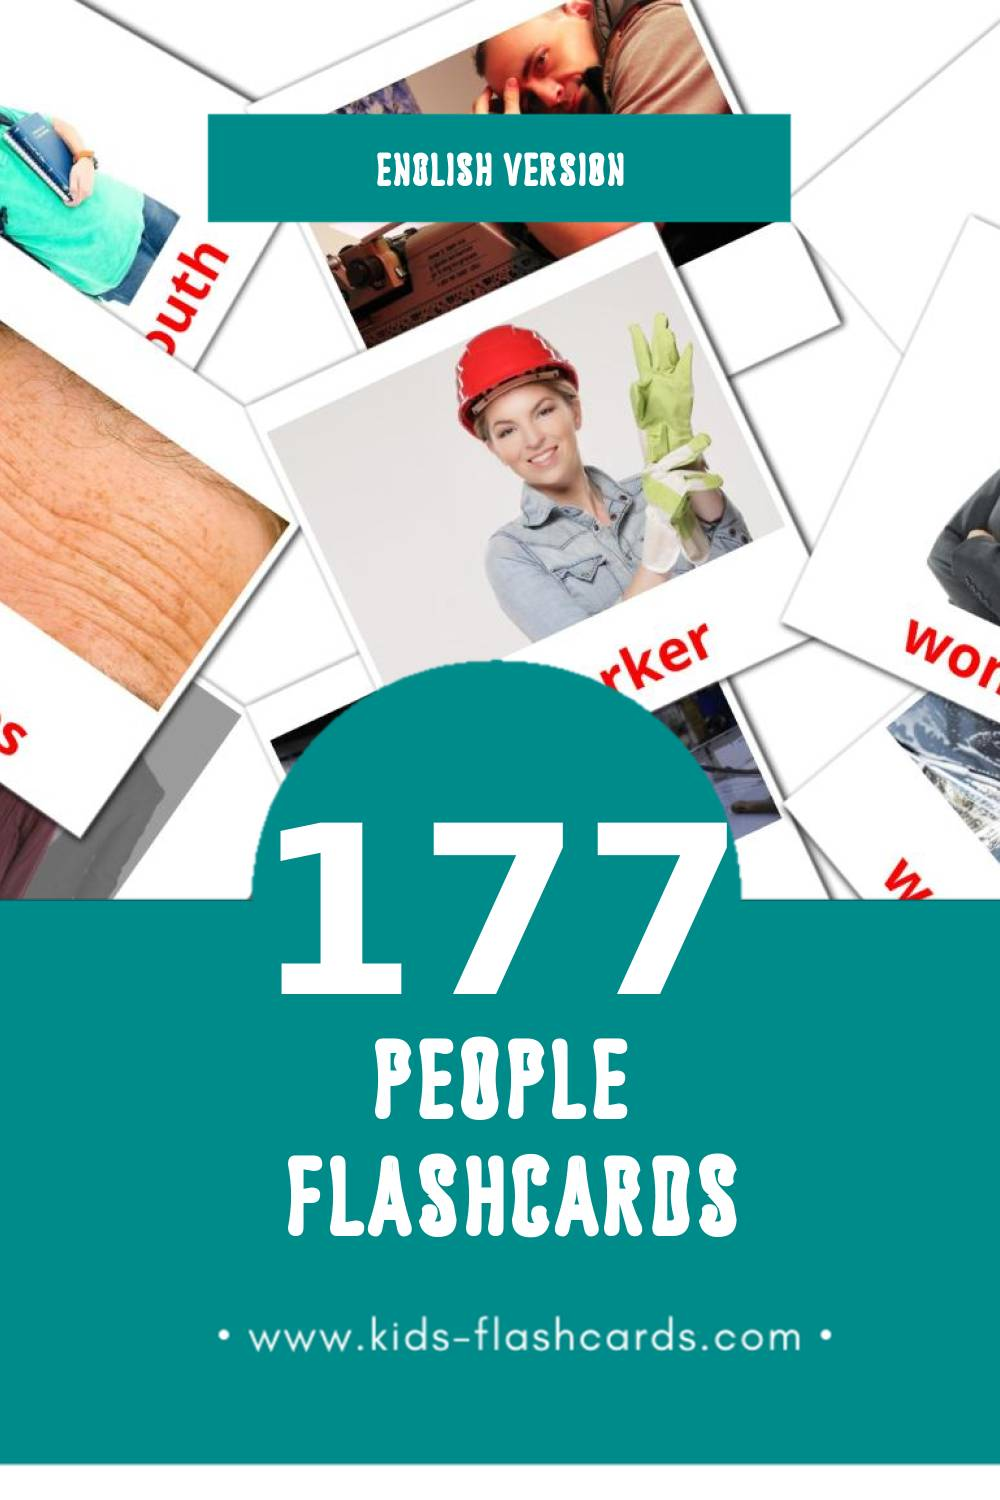 Visual People Flashcards for Toddlers (177 cards in English)